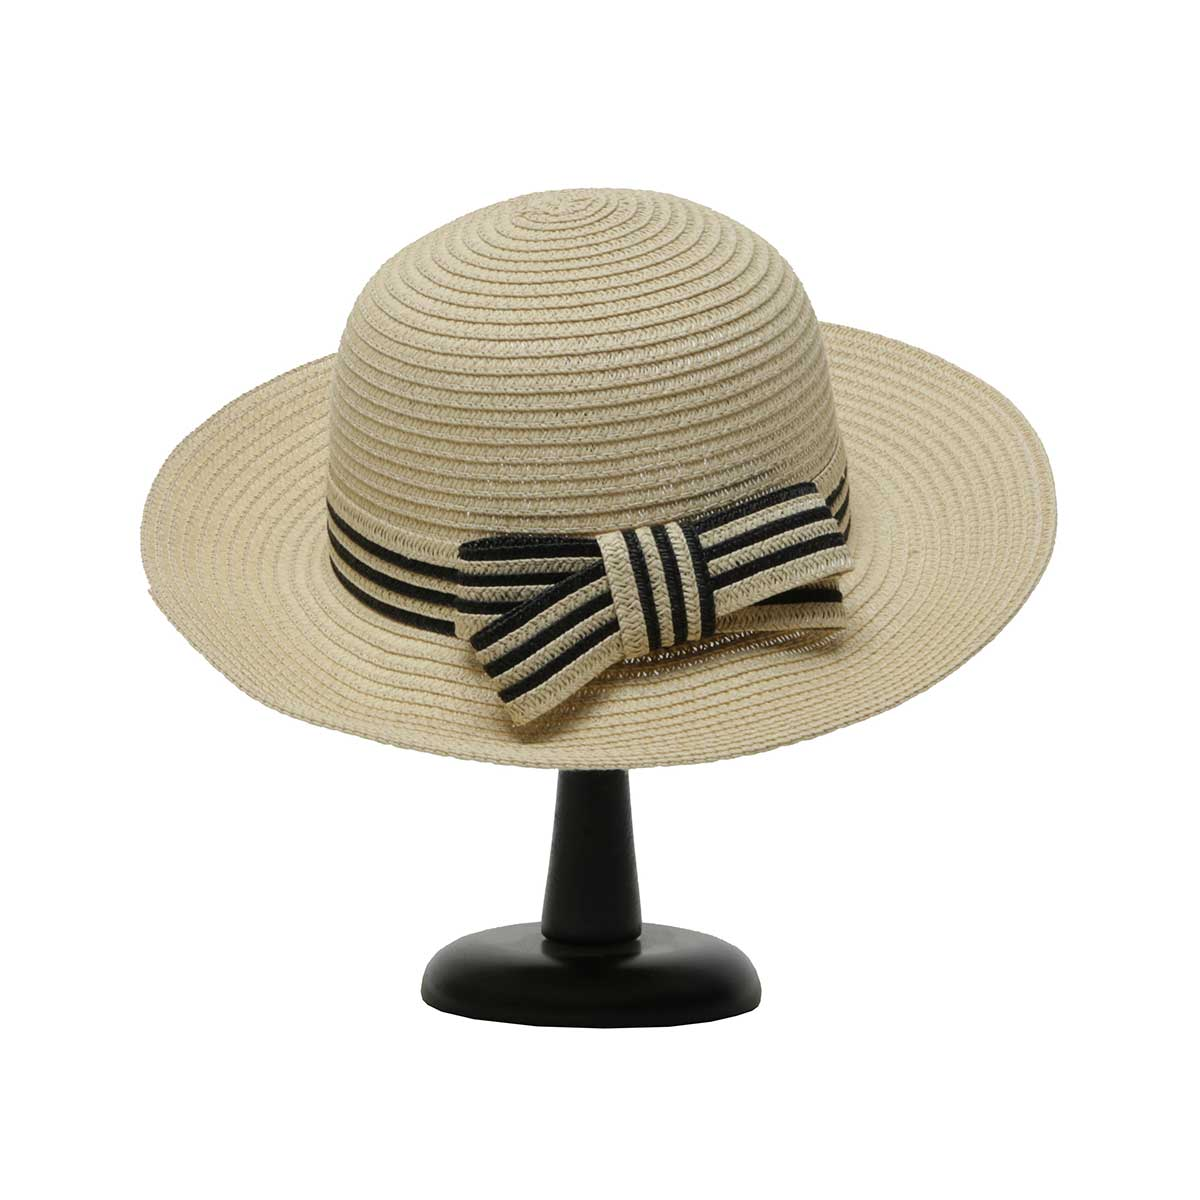 Beige Bowler Hat with Black and Beige Trim and Bow